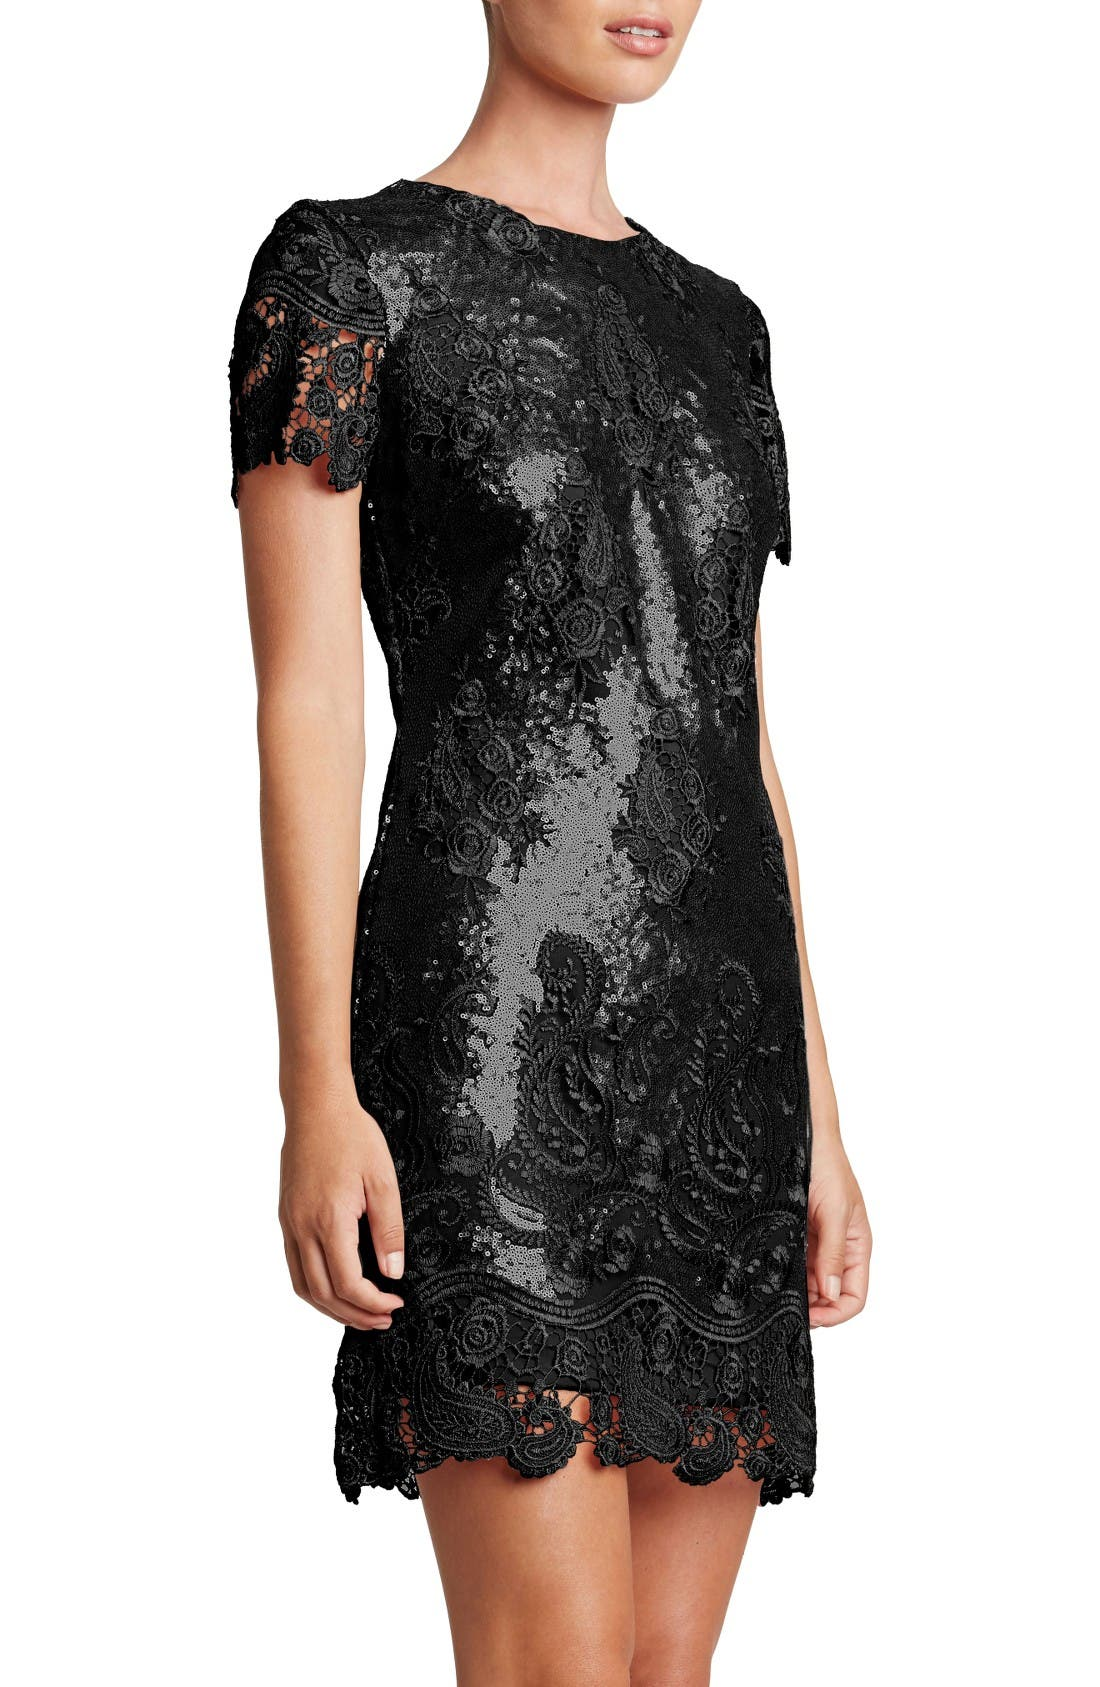 Alternate Image 1 Selected - Dress the Population Joy Sequin Lace Minidress